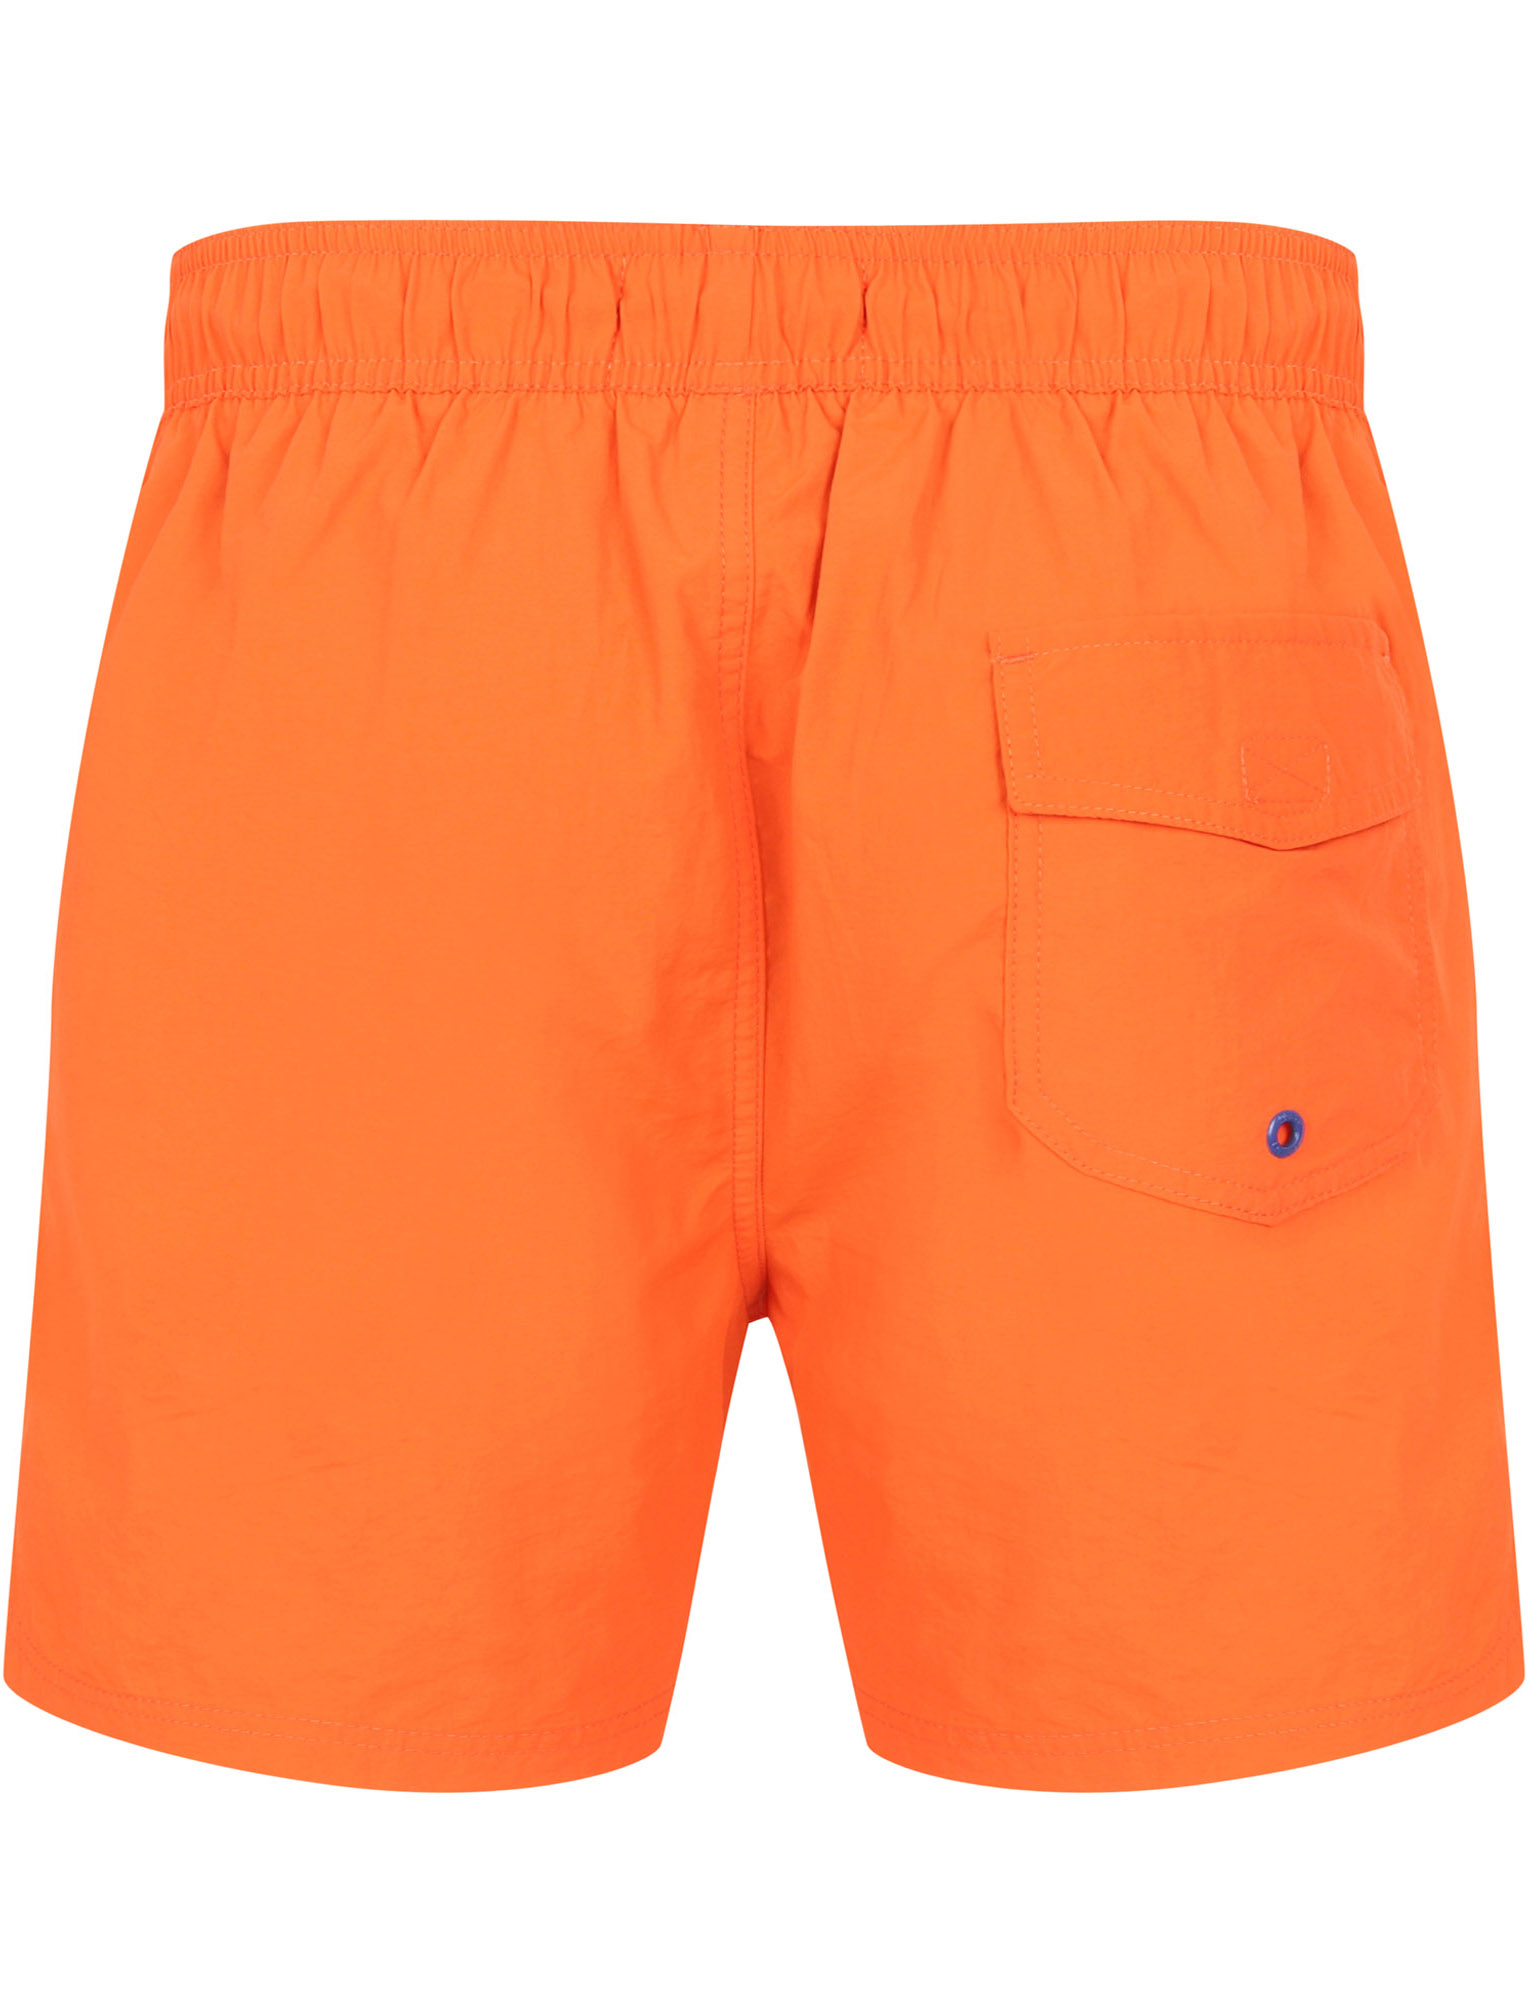 New-Mens-Tokyo-Laundry-Branded-Classic-Soft-Swim-Shorts-With-Pockets-Size-S-XXL thumbnail 22